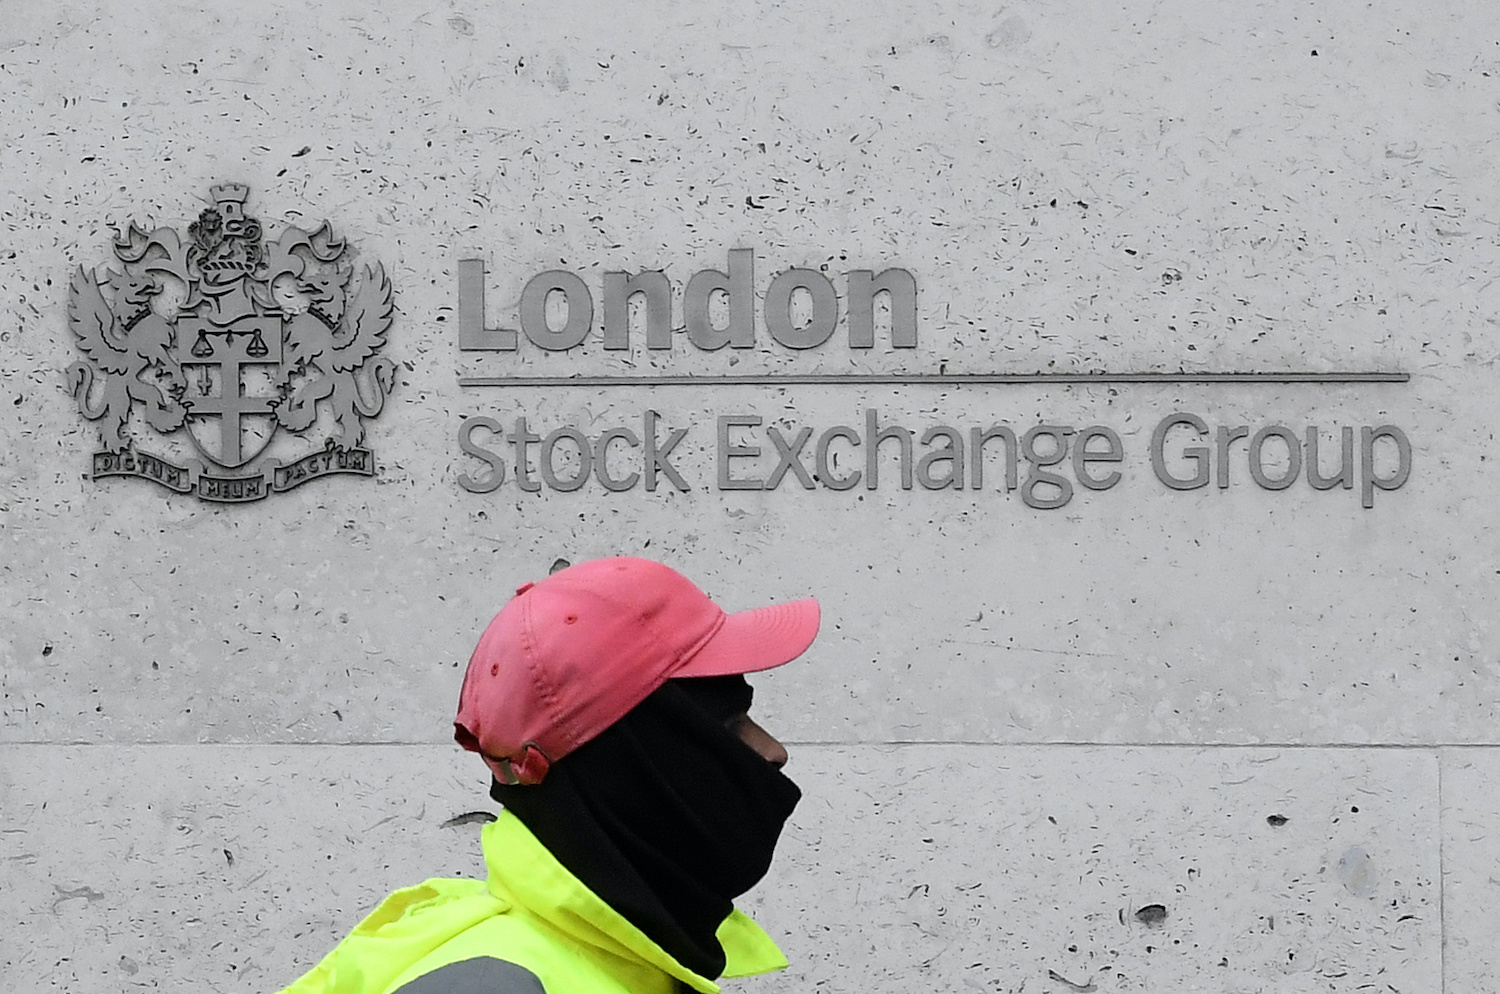 FTSE Russell drops eight China firms from indexes